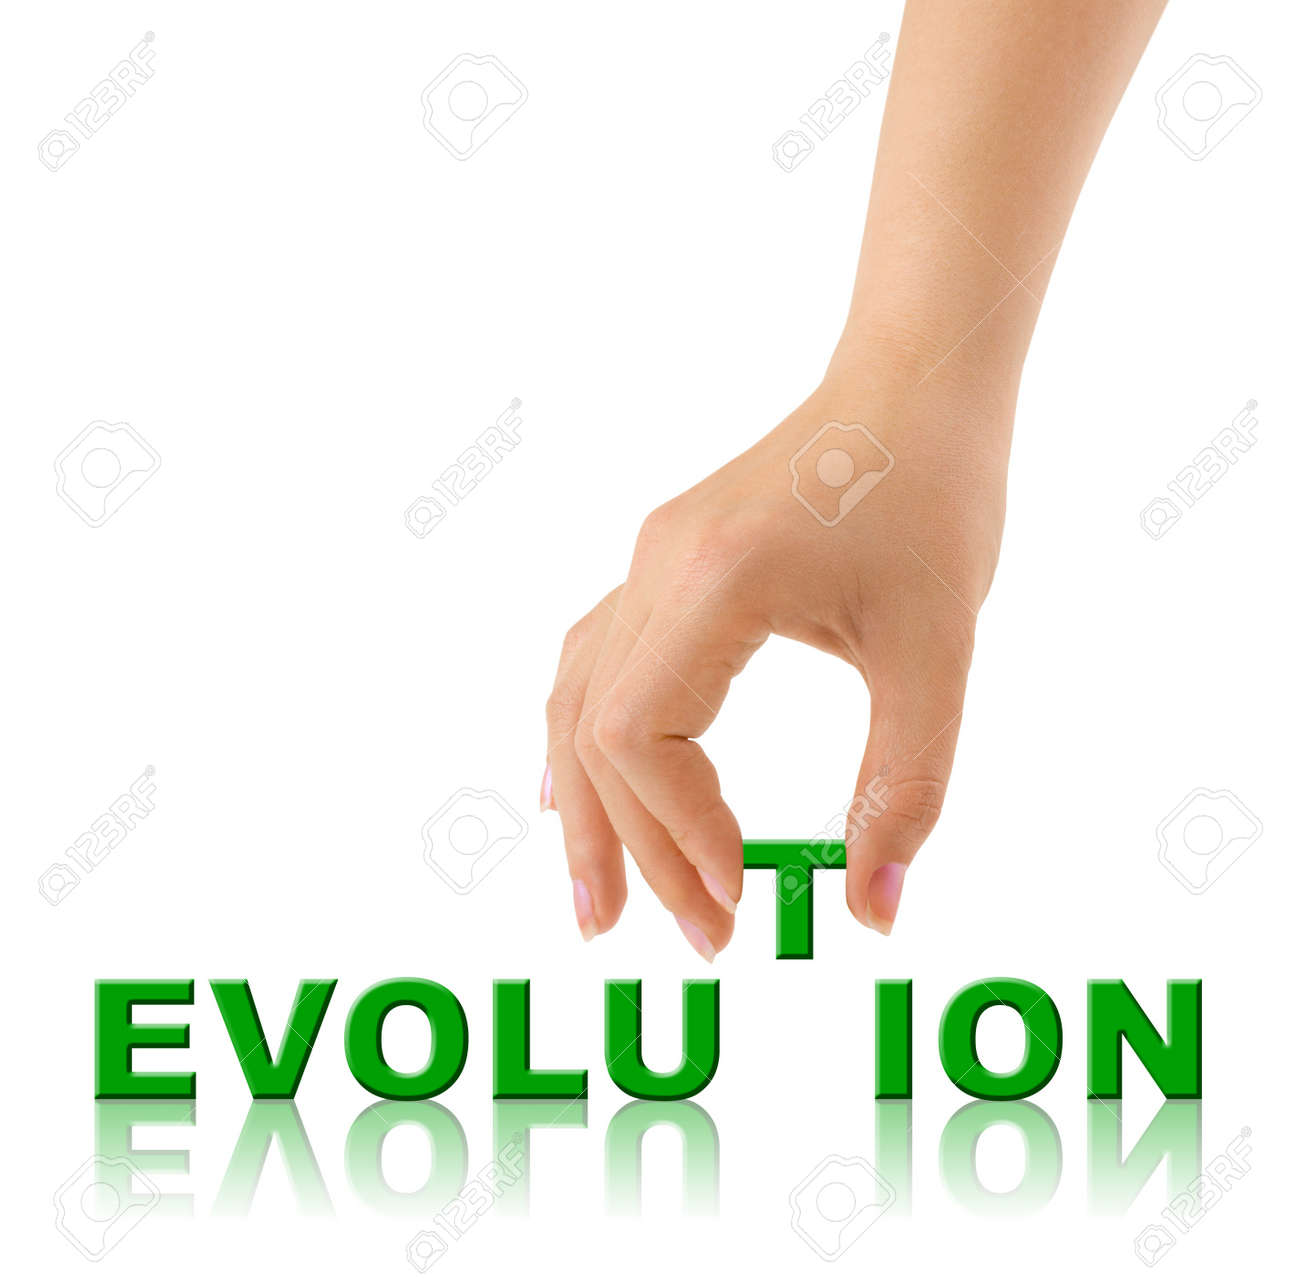 Hand and word Evolution isolated on white background Stock Photo - 8804981